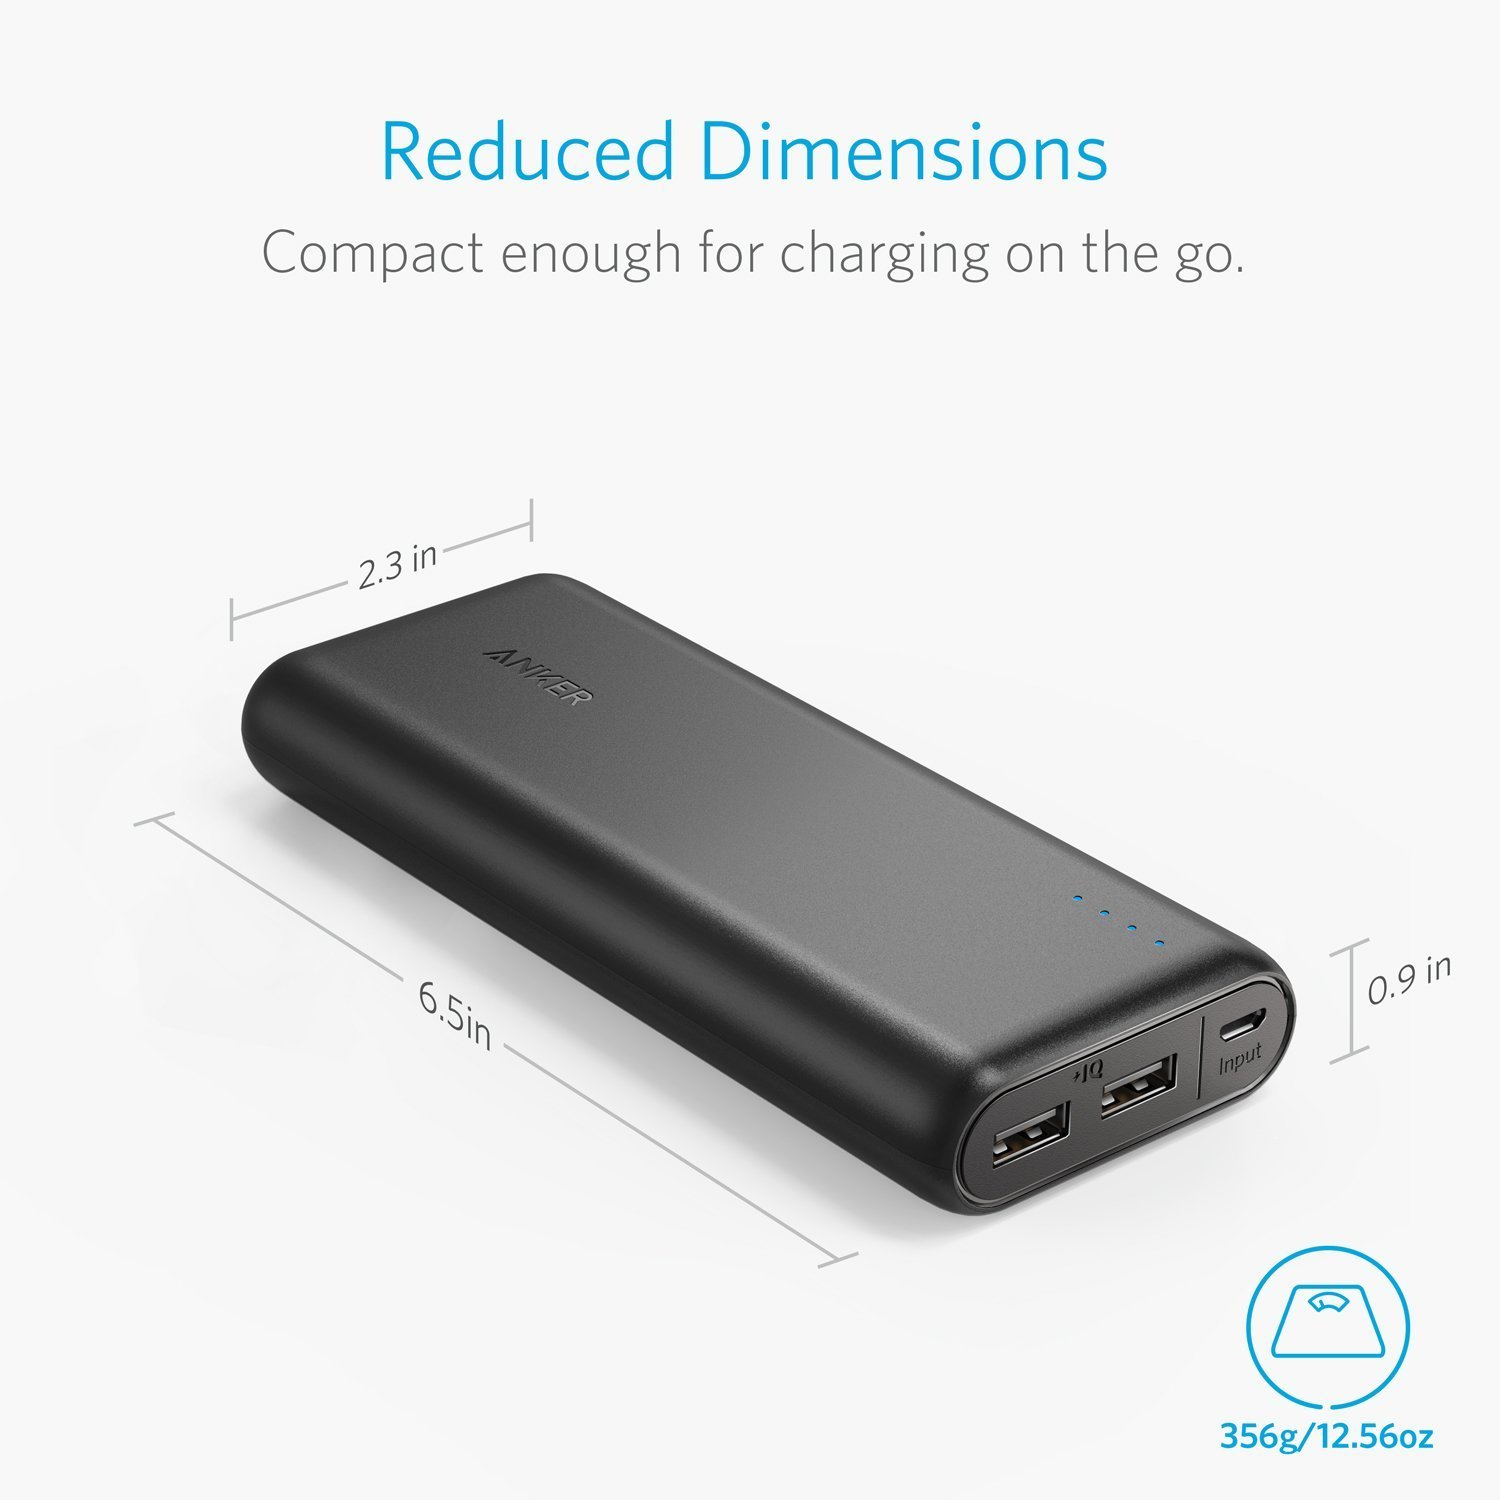 anker powercore 20100 portable charger black a1271h12